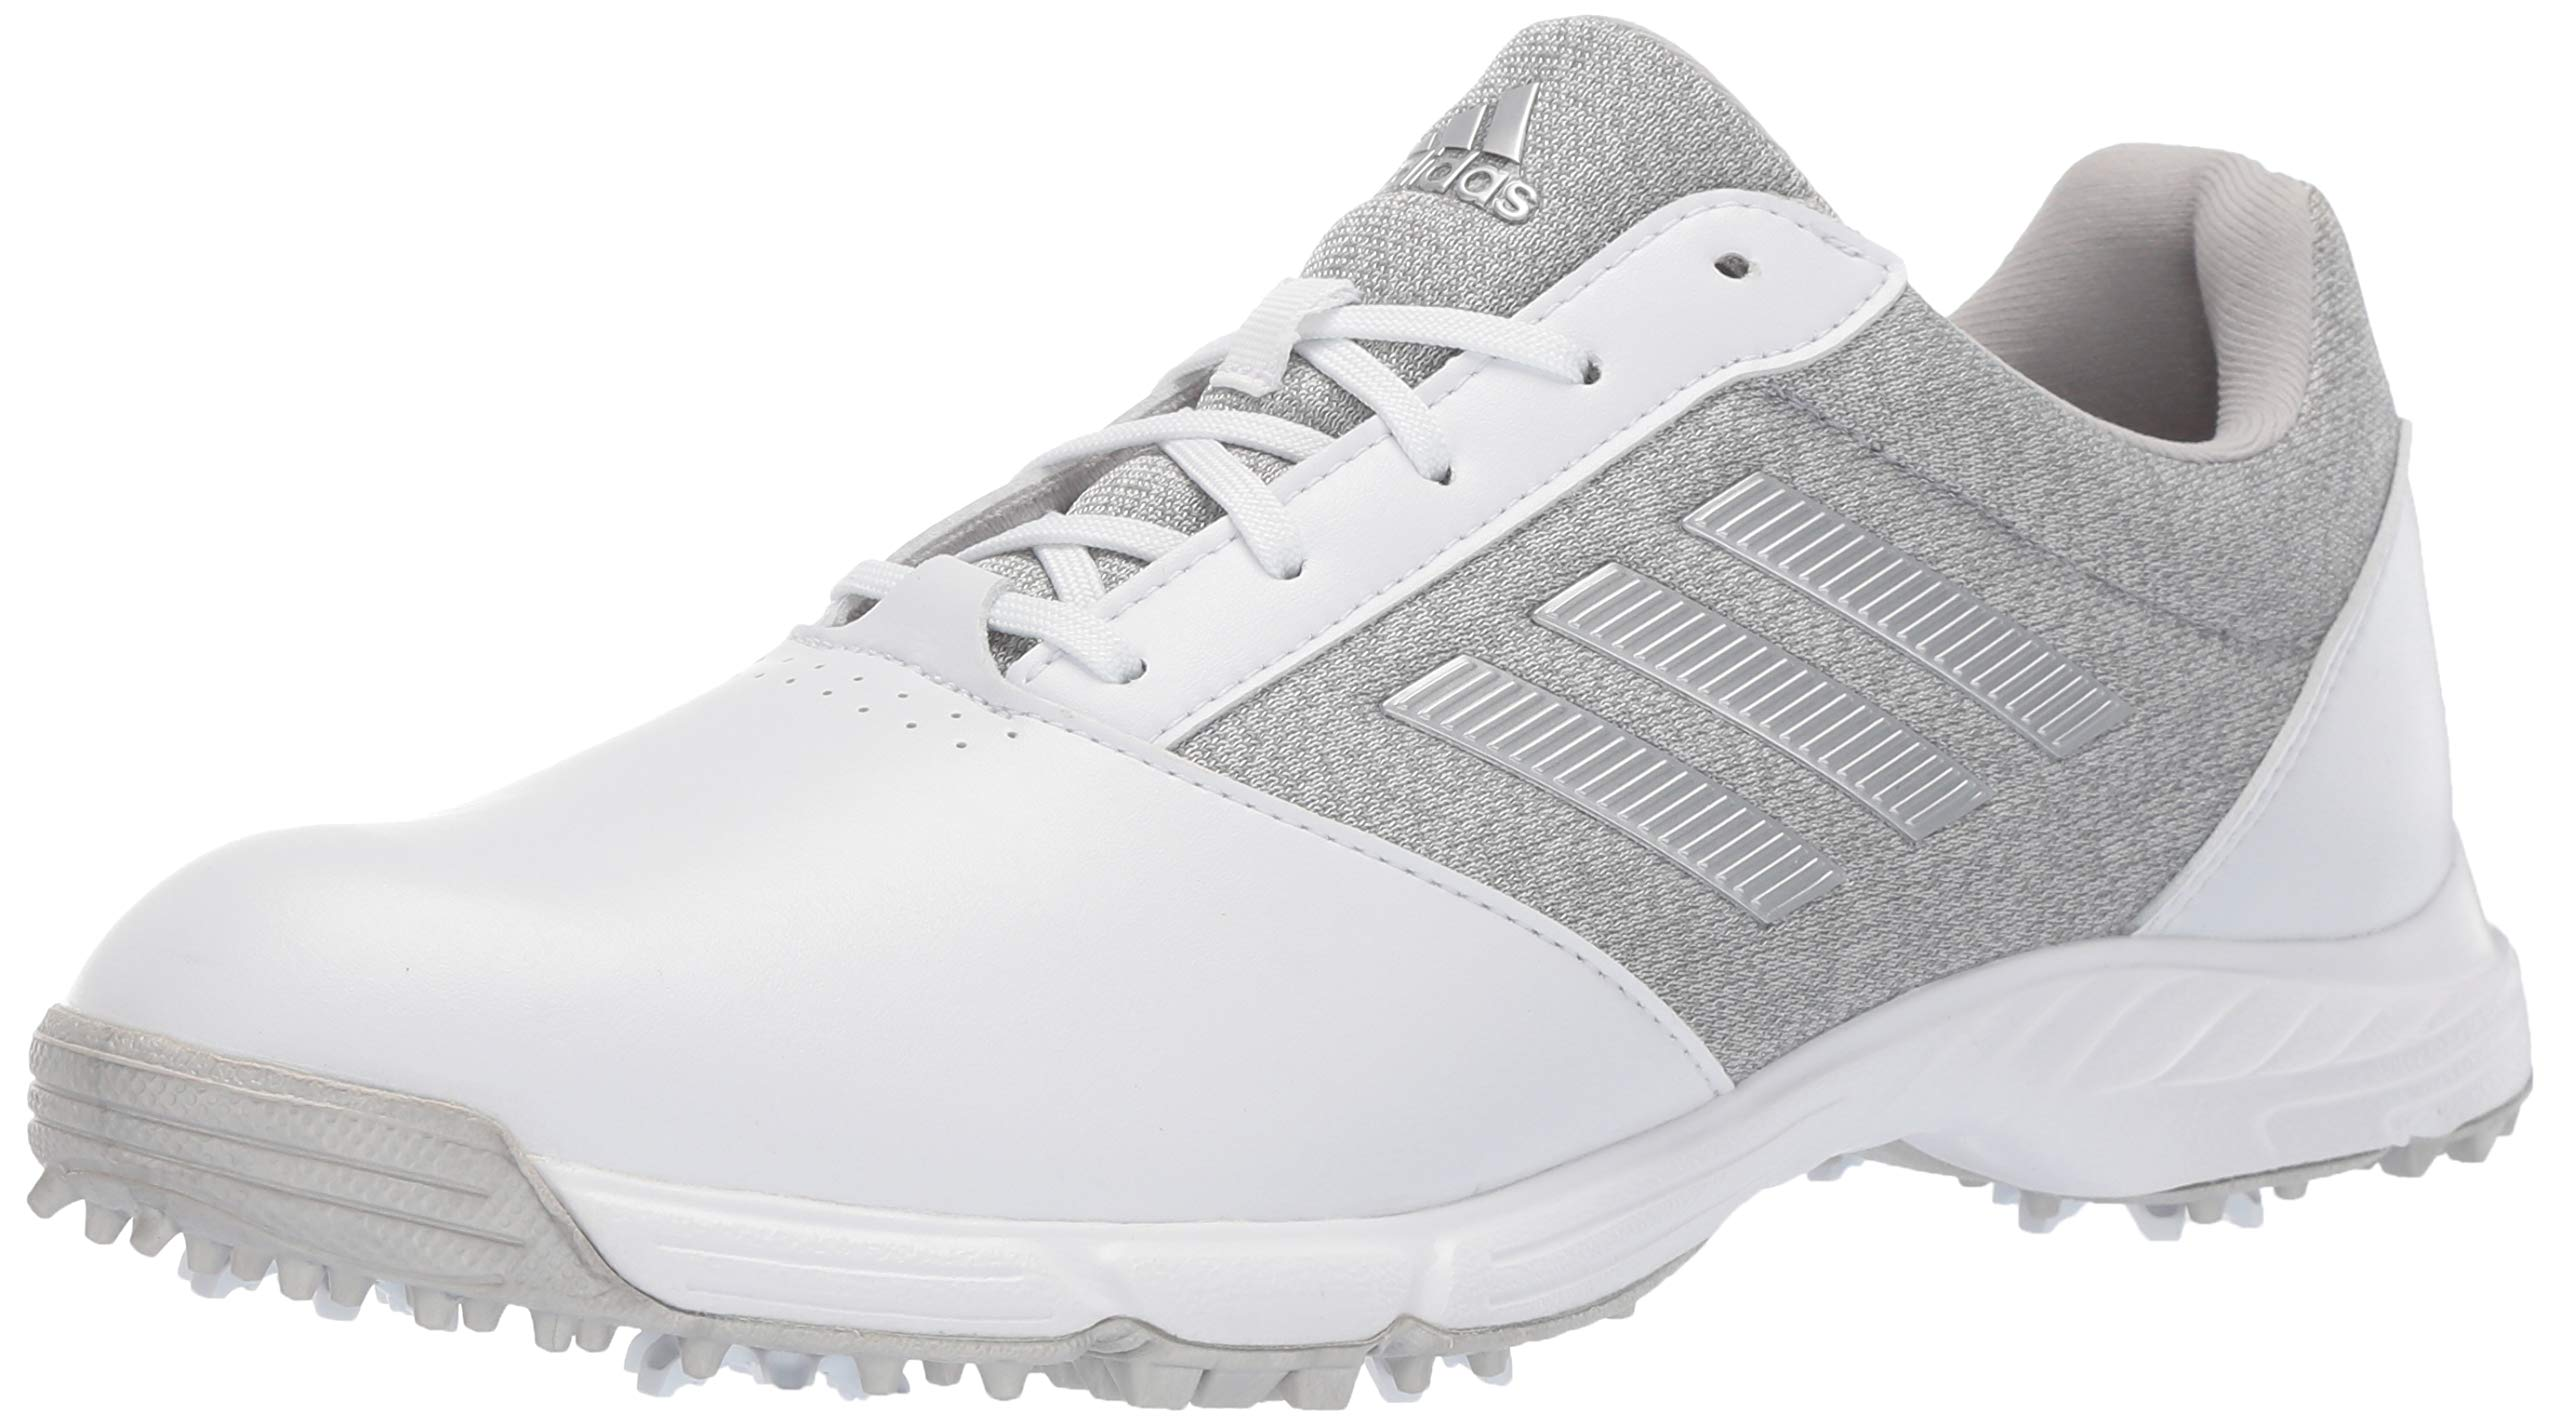 adidas Womens TECH Response Golf Shoe, White/Silver Metallic/Grey Two, 9 M US by adidas